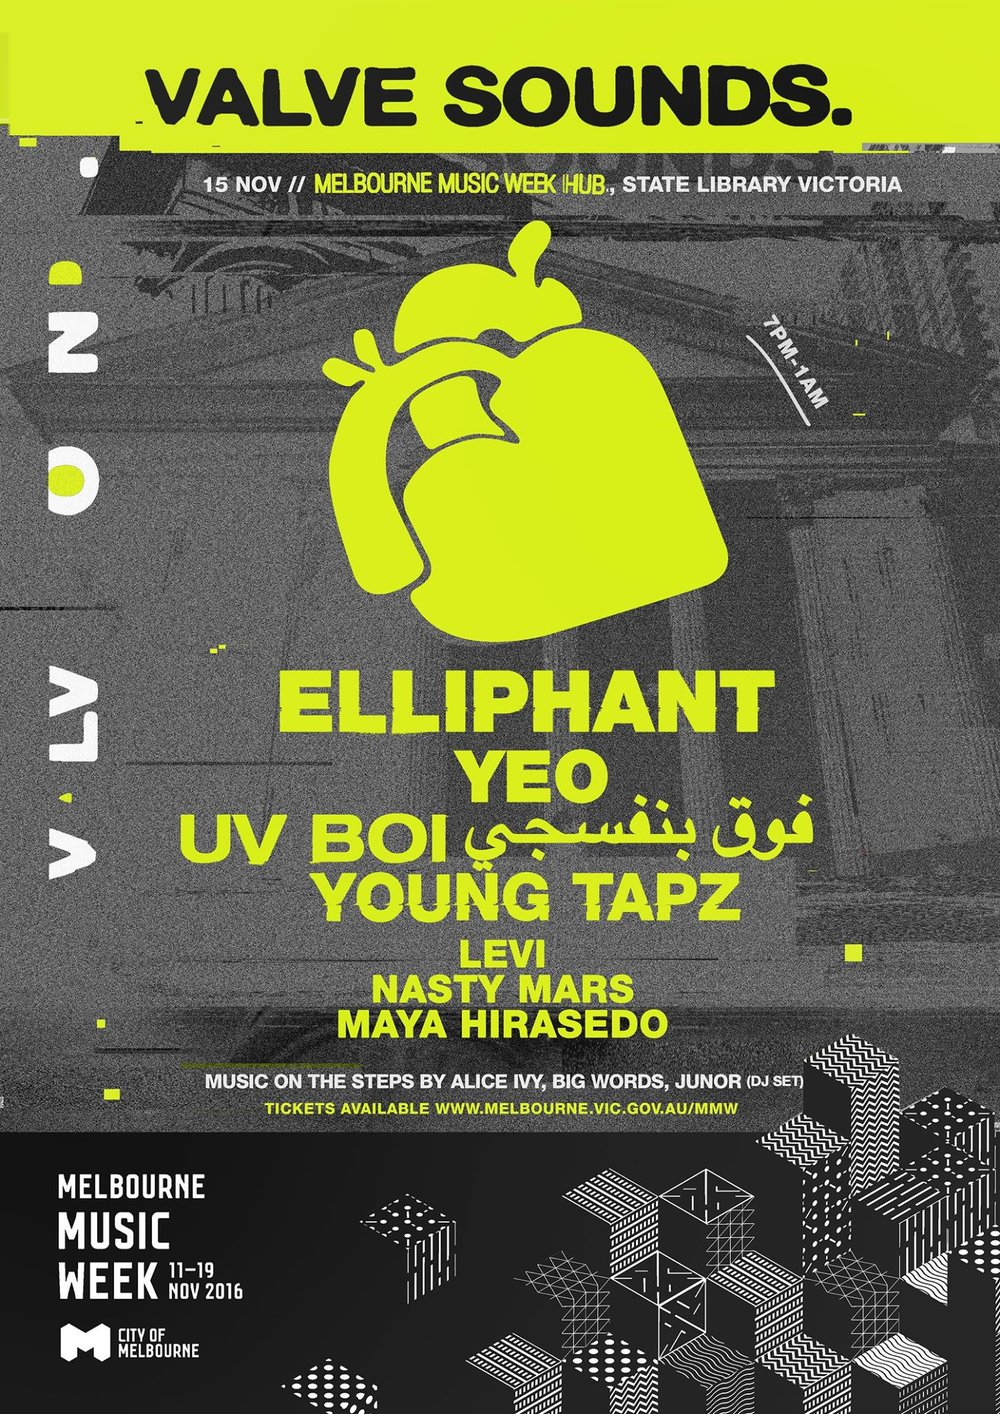 MMW 16: Valve Sounds. - Featuring Elliphant, Yeo, UV boi فوق بنفسجي, Young Tapz, Lord Levi, Nasty Mars, Maya Hirasedo + music in the forecourt by Alice Ivy, Big Words +Juñor (DJ set)Local record label and management group Valve Sounds presents a staggering line-up of some of the most innovative local and international hip-hop, soul and R&B as they take over the Queen's Hall at State Library Victoria.Since bursting onto the European hip-hop scene in 2011, Elliphant has quickly earned comparisons to MIA and Diplo for her fierce lyrical prowess and futuristic sound.Melbourne producer-songwriter Yeo, upstart Brisbane production genius UV boi فوق بنفسجي plus Young Tapz, Levi, Nasty Mars and Maya Hirasedo complete the line-up in what will be a huge night of some of the most exciting hip-hop, soul and RnB artists on the scene right now.------------------------------ElliphantYeoUV boi فوق بنفسجيYoung TapzLord LeviNasty MarsMaya Hirasedo+ music on the library steps by:Alice IvyBig WordsJuñor (DJ set)